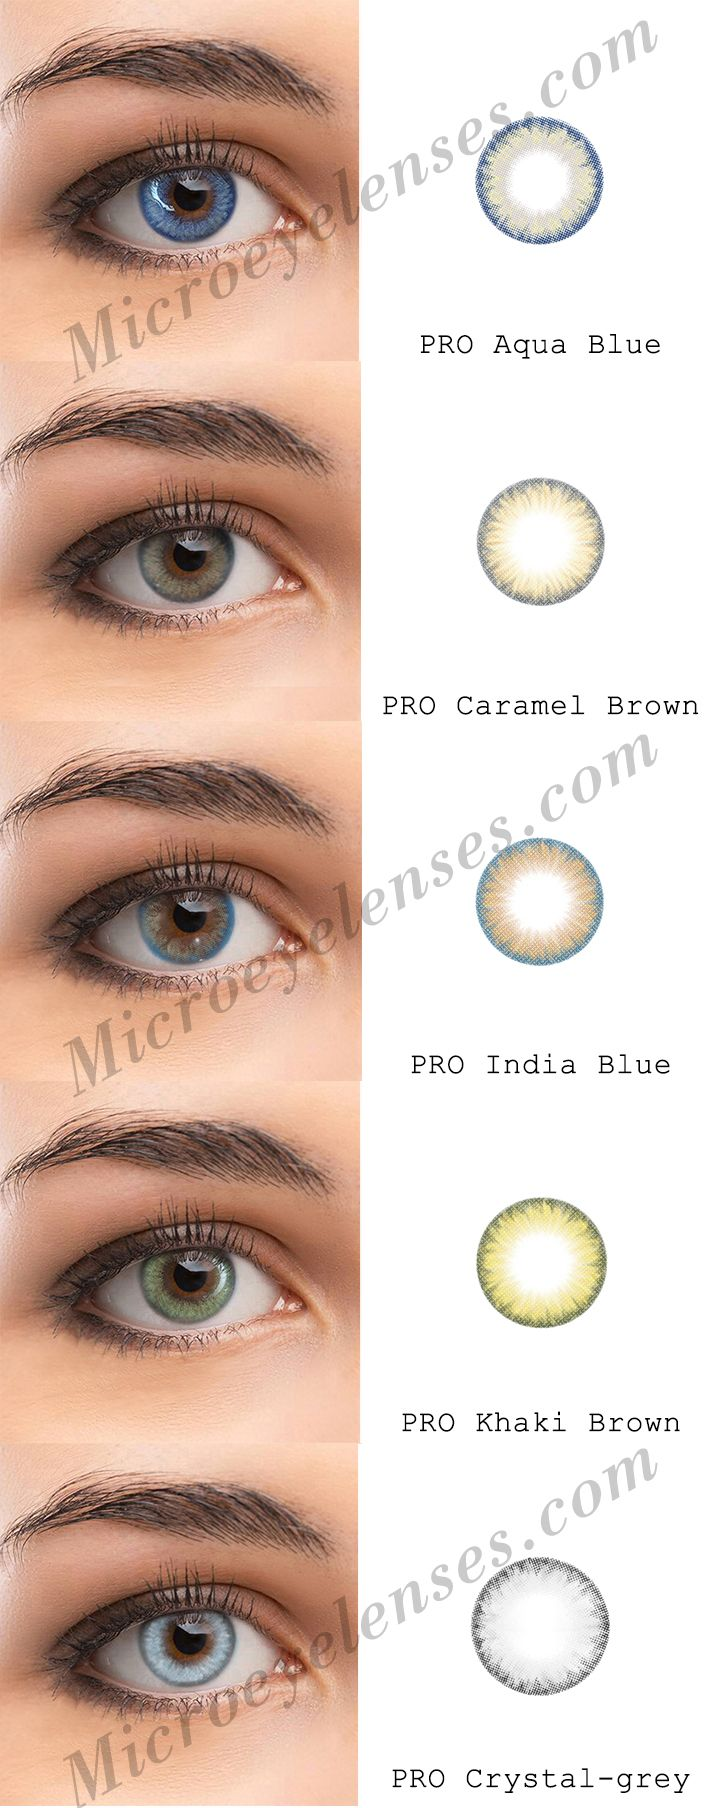 Microeyelenses Com Colored Contact Lenses Online Shop Pro Series Aqua Blue Brown Indian Blue Contact Lenses Colored Green Contacts Lenses Colored Contacts